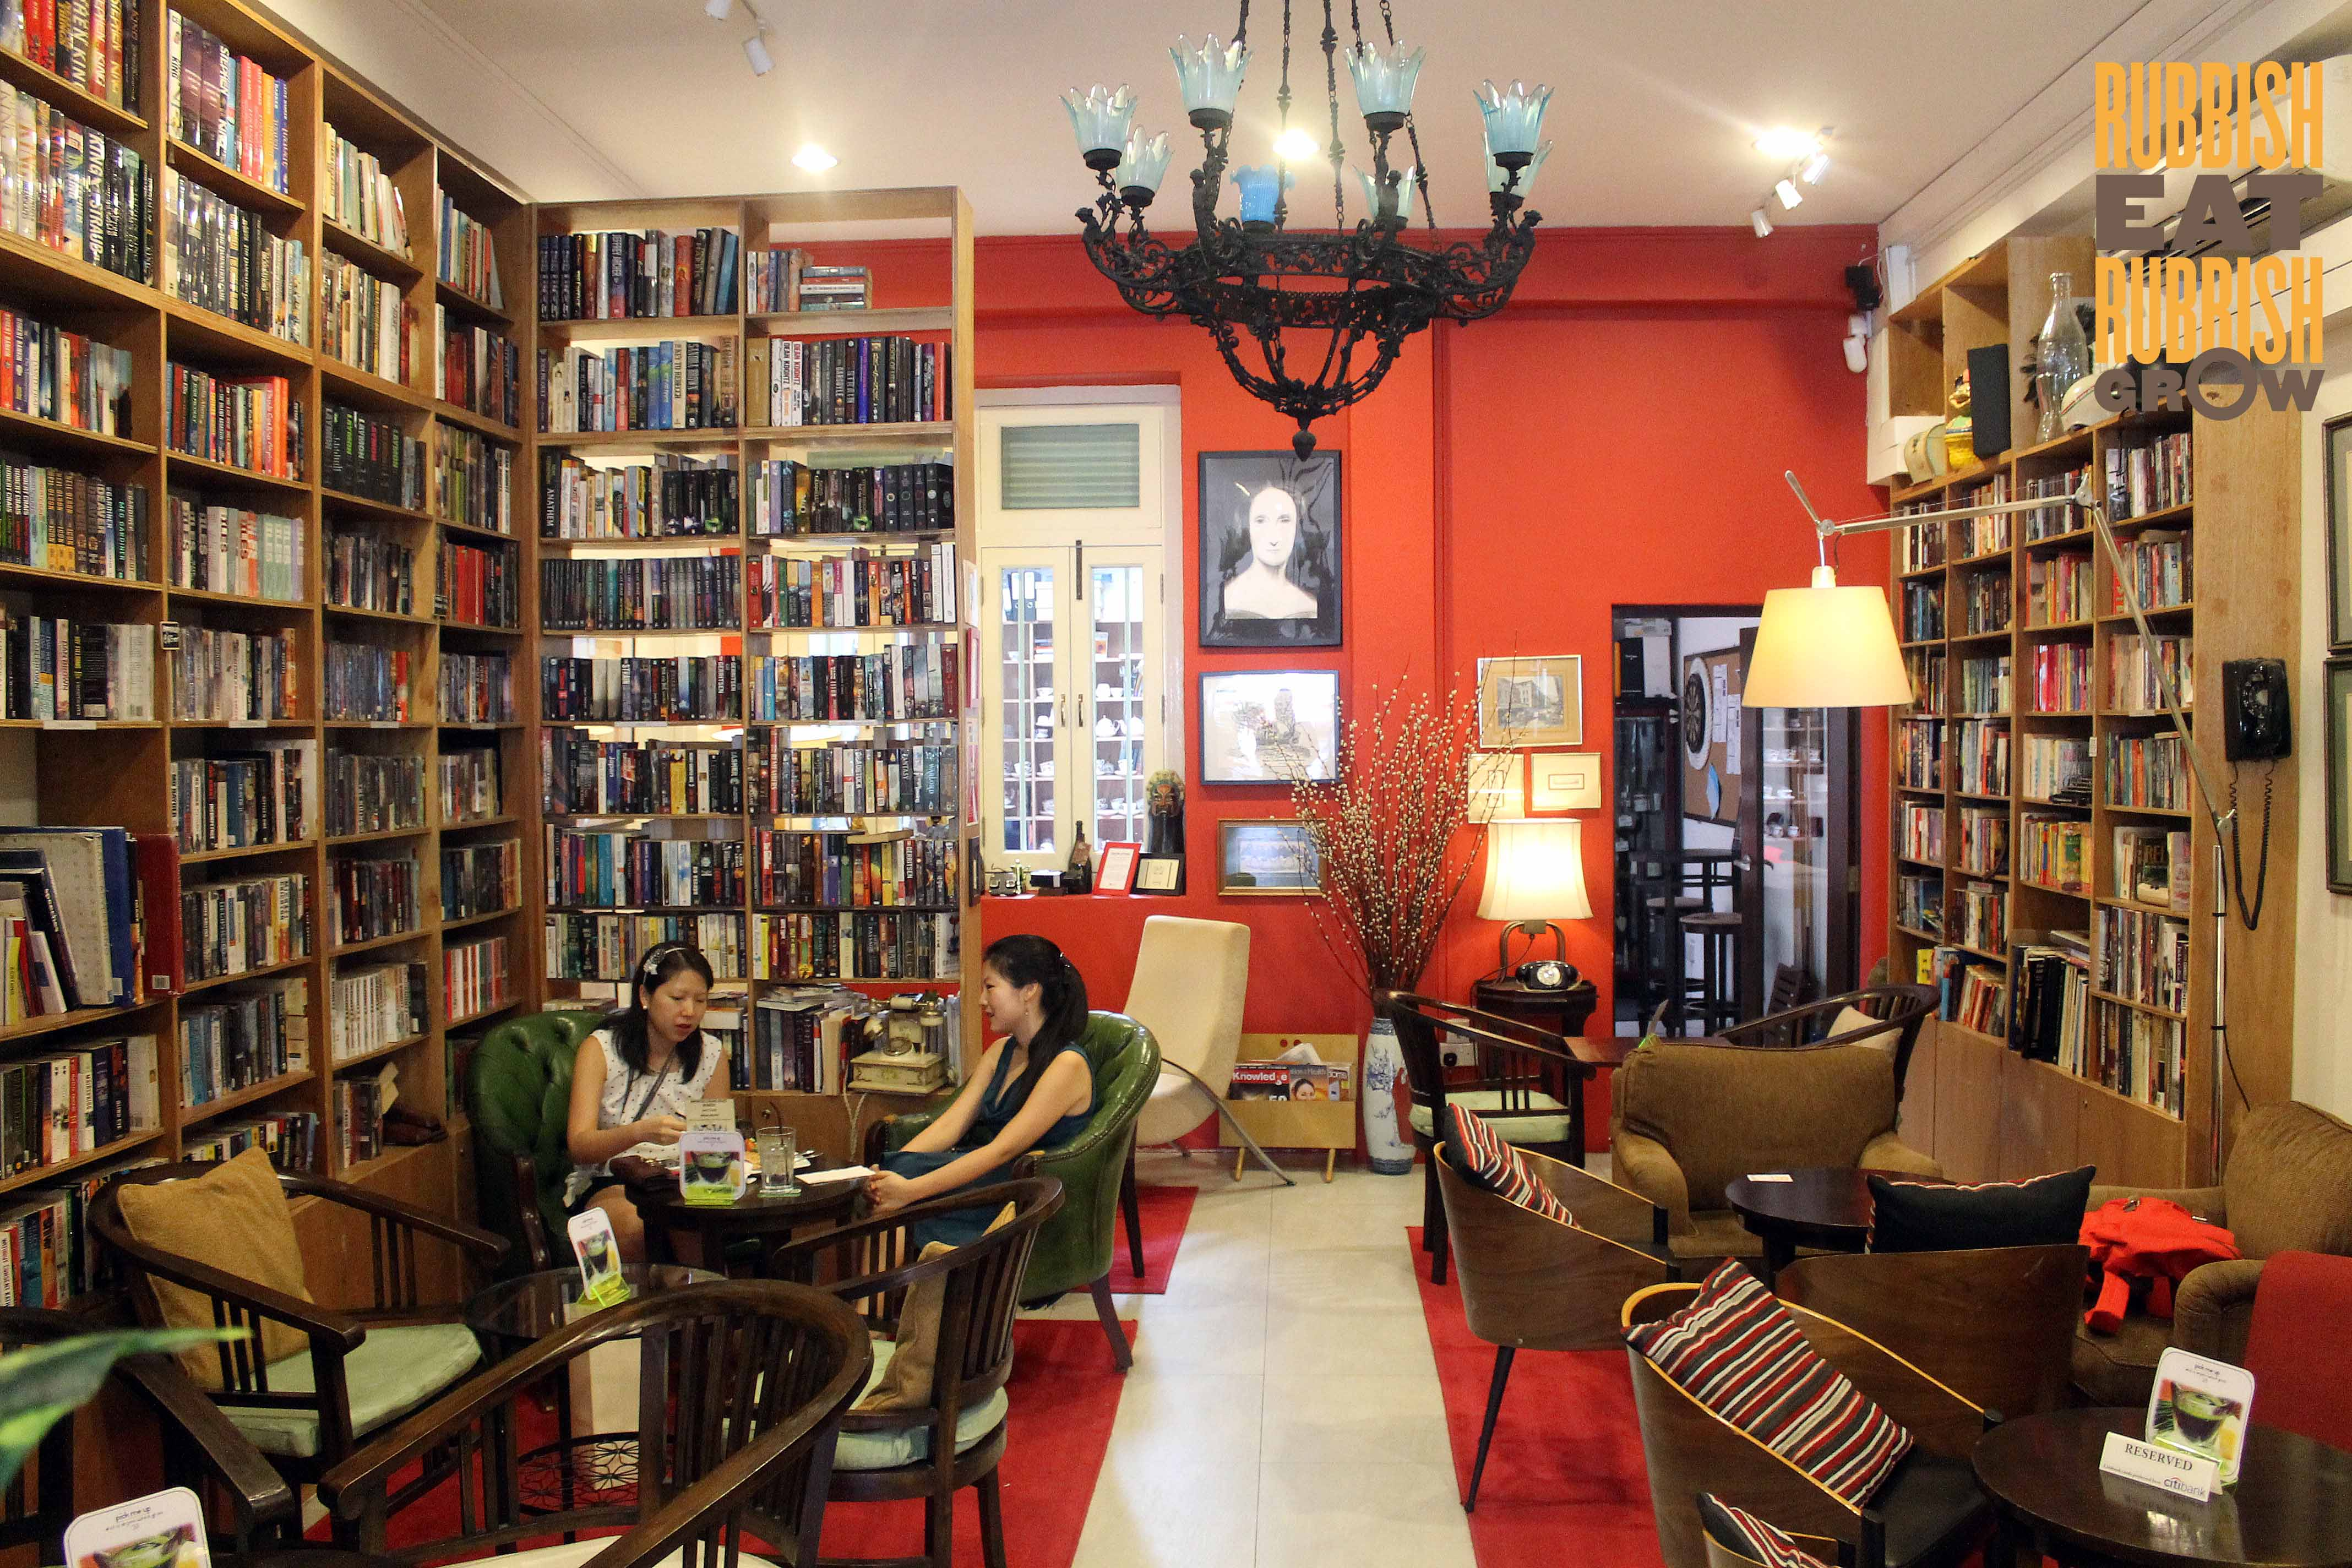 Reading Room Cafe Singapore - AspirantSG